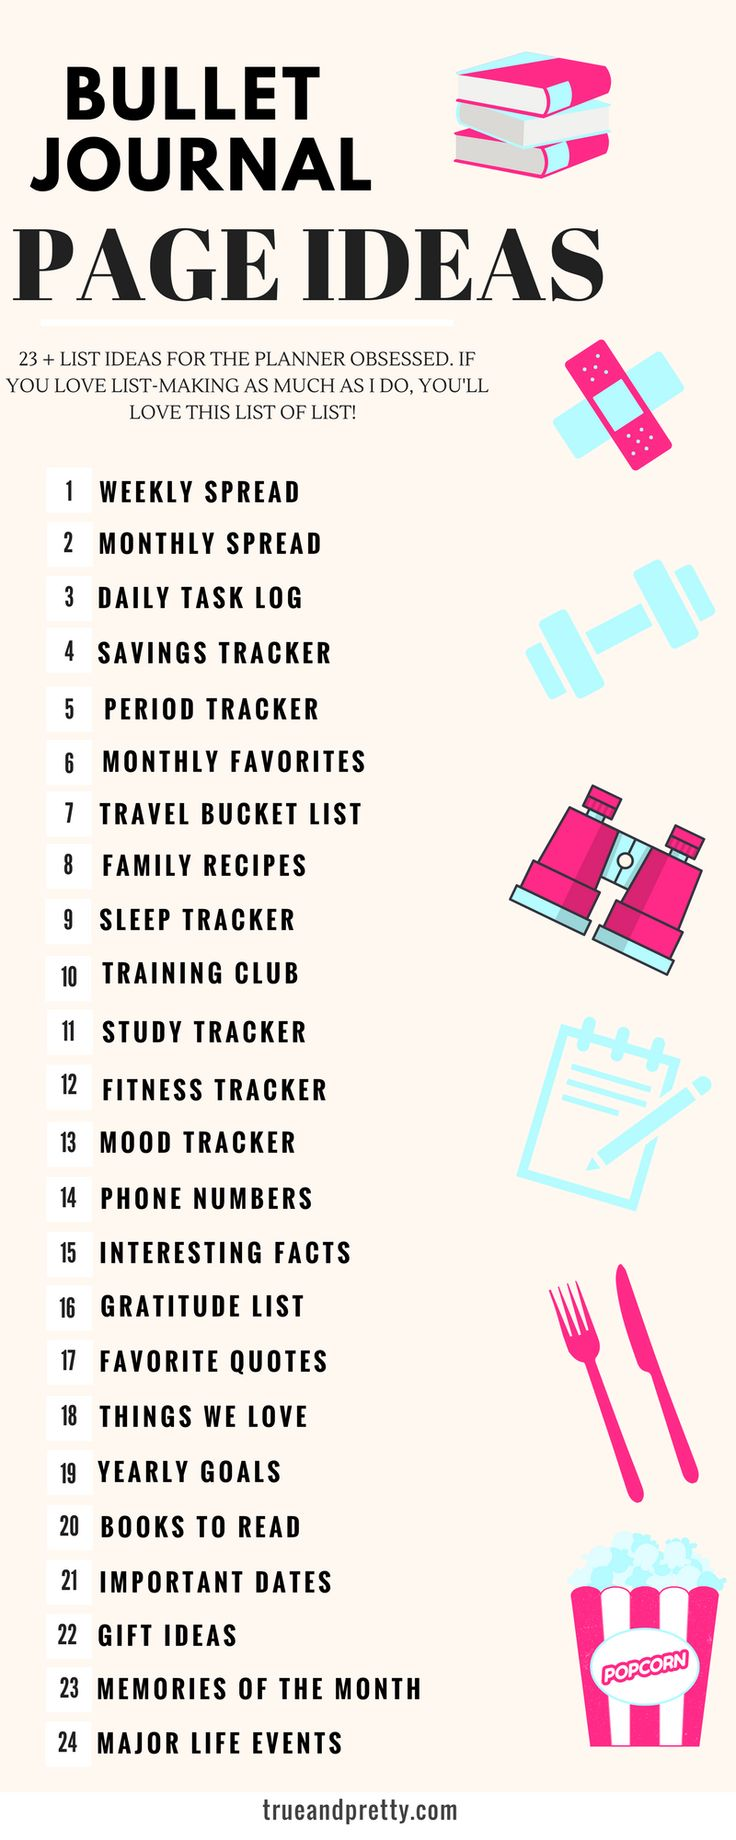 best 25 bullet journal ideas ideas on pinterest handwriting ideas bullet journal and bullet. Black Bedroom Furniture Sets. Home Design Ideas